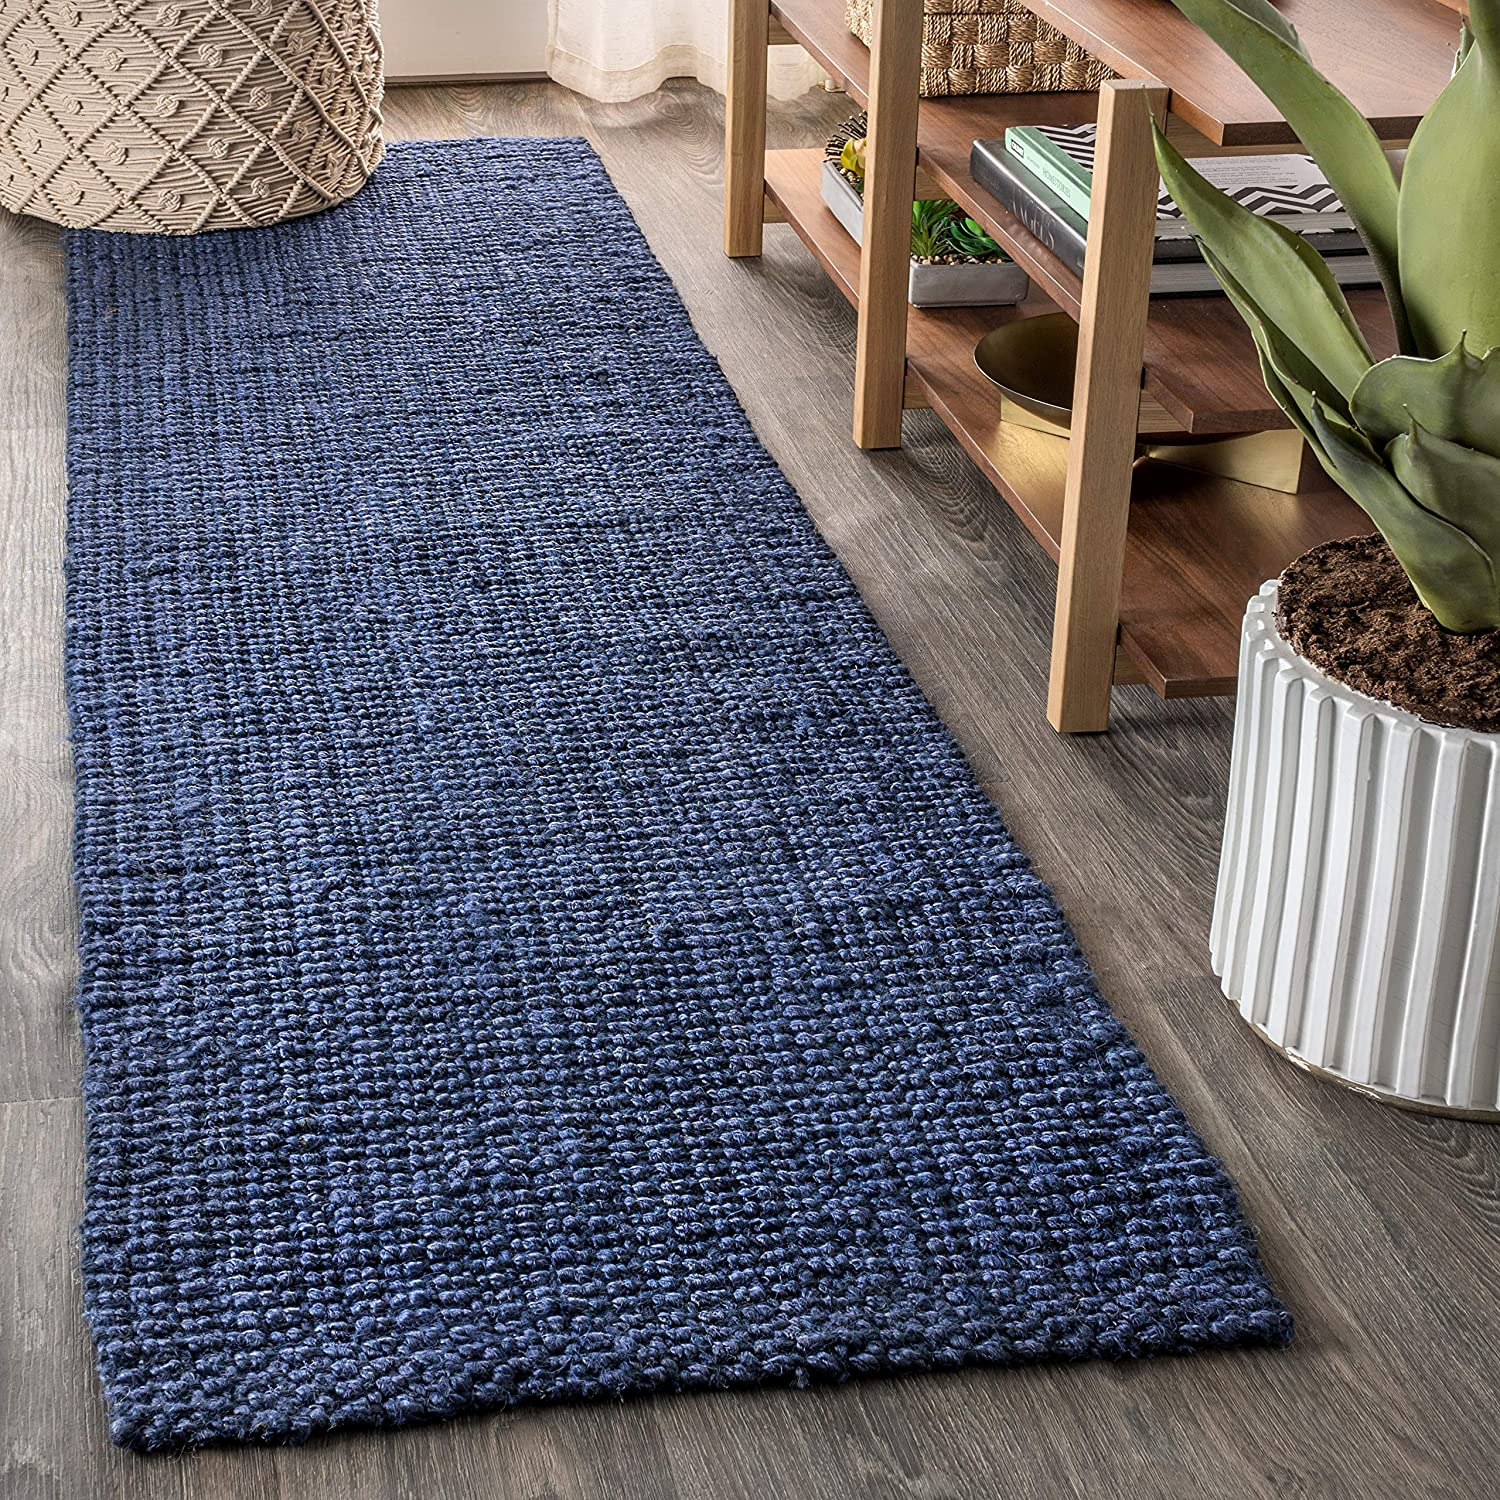 Amazon Com Jonathan Y Pata Hand Woven Chunky Jute Navy 2 Ft X 8 Ft Runner Rug Bohemian Easy Cleaning For Bedroom Kitchen Living Room Non Shedding Furniture Decor